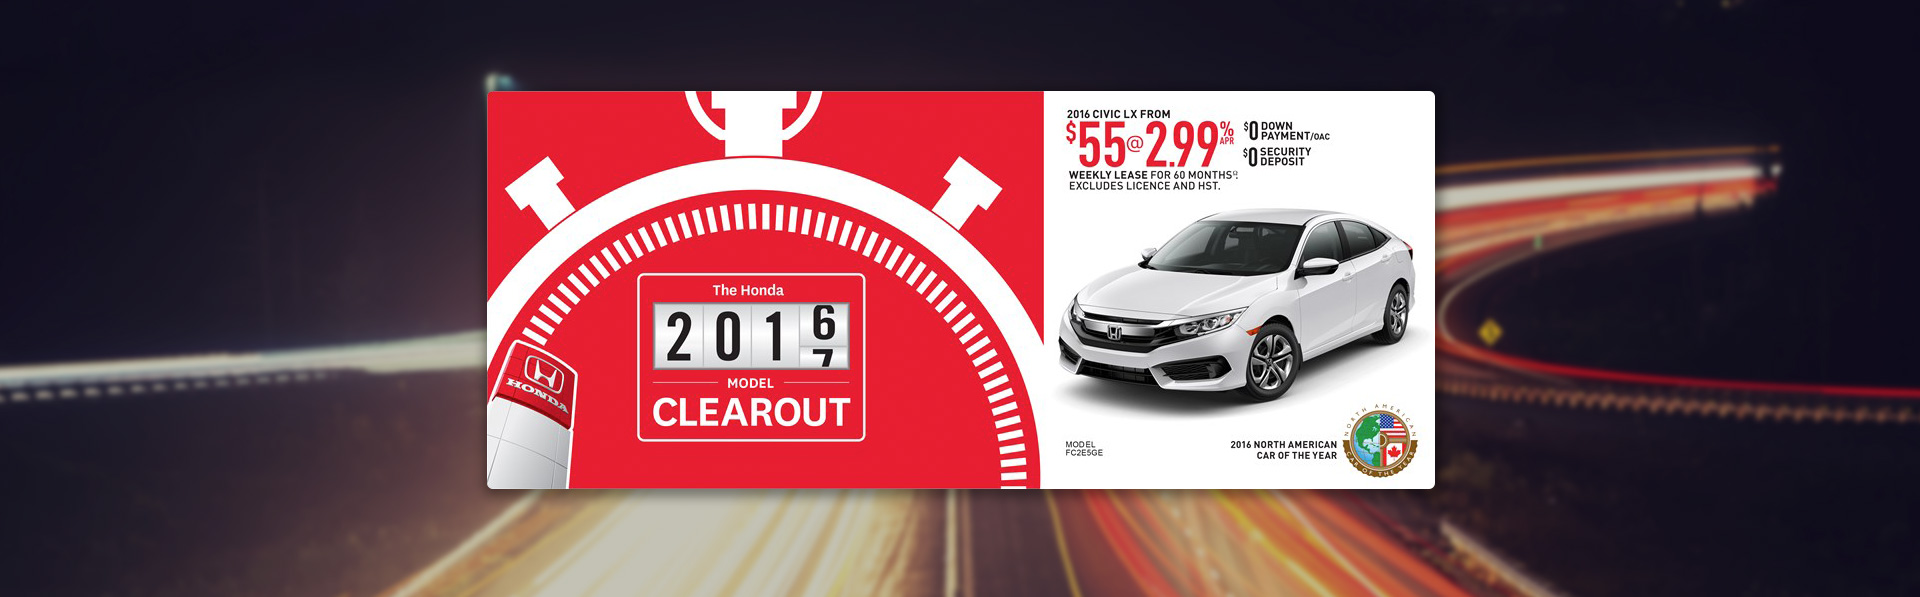 Honda Civic - September Incentive